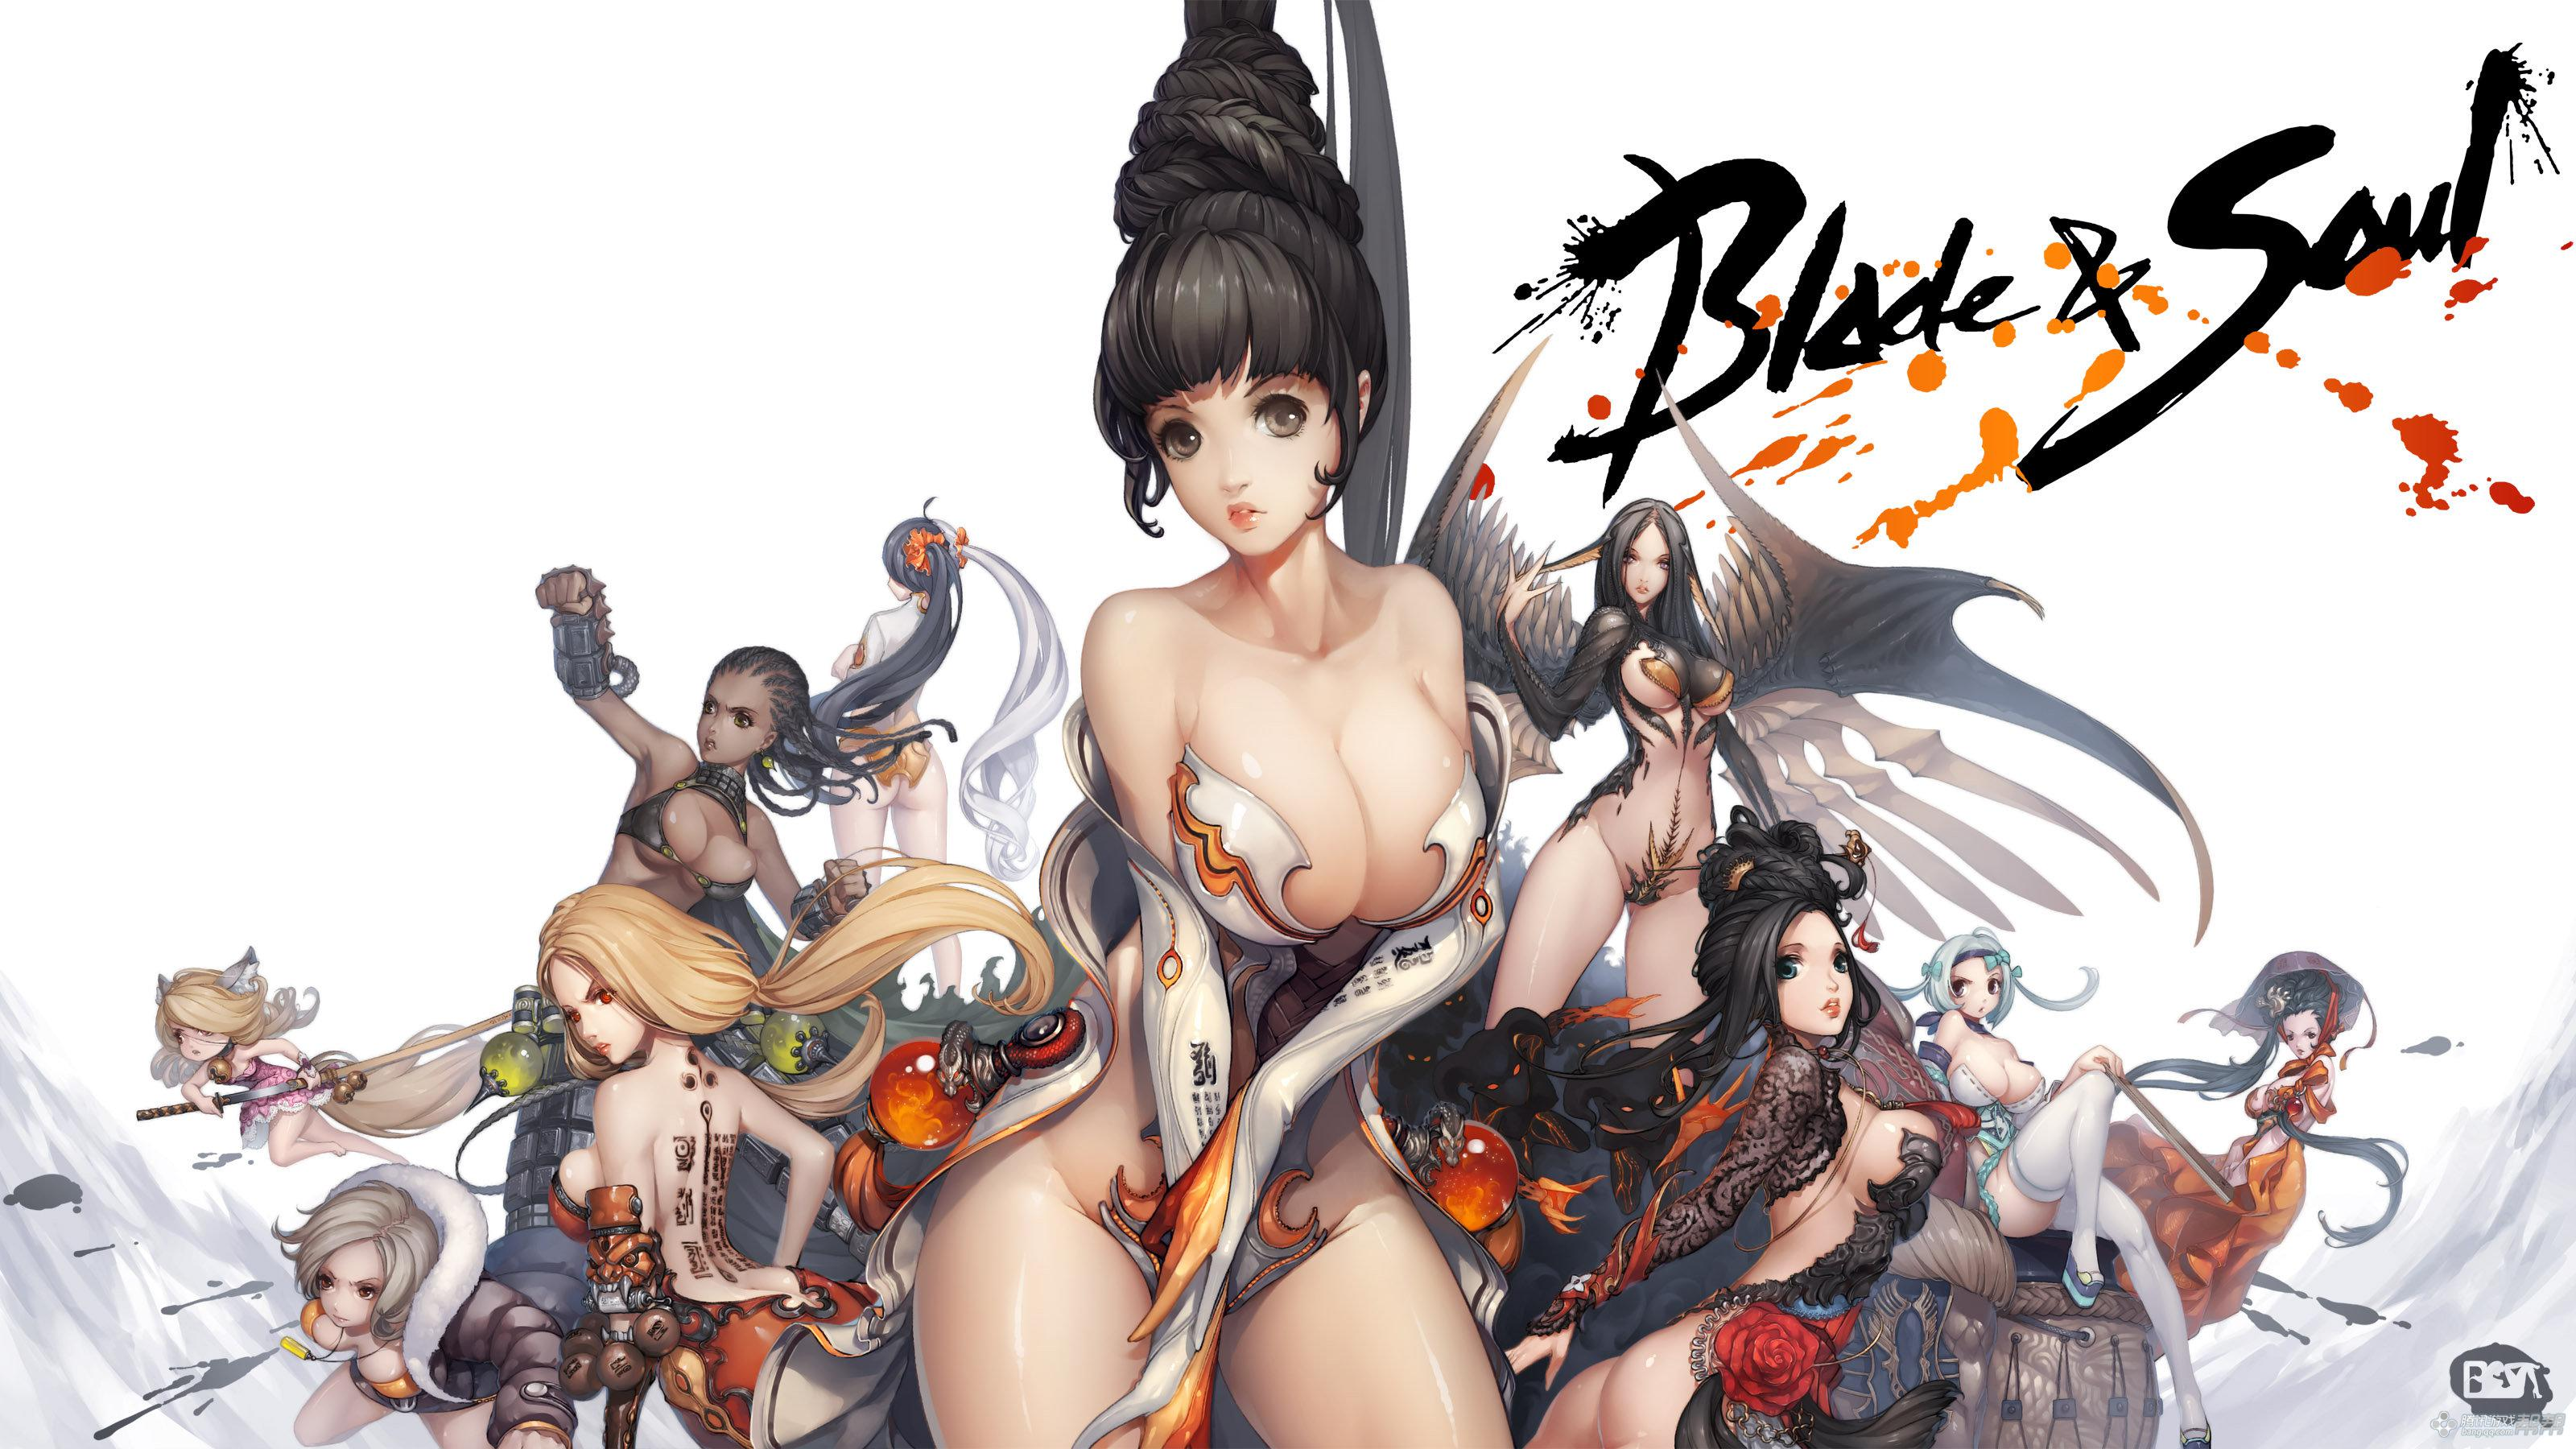 Sex blade and soul Sex change